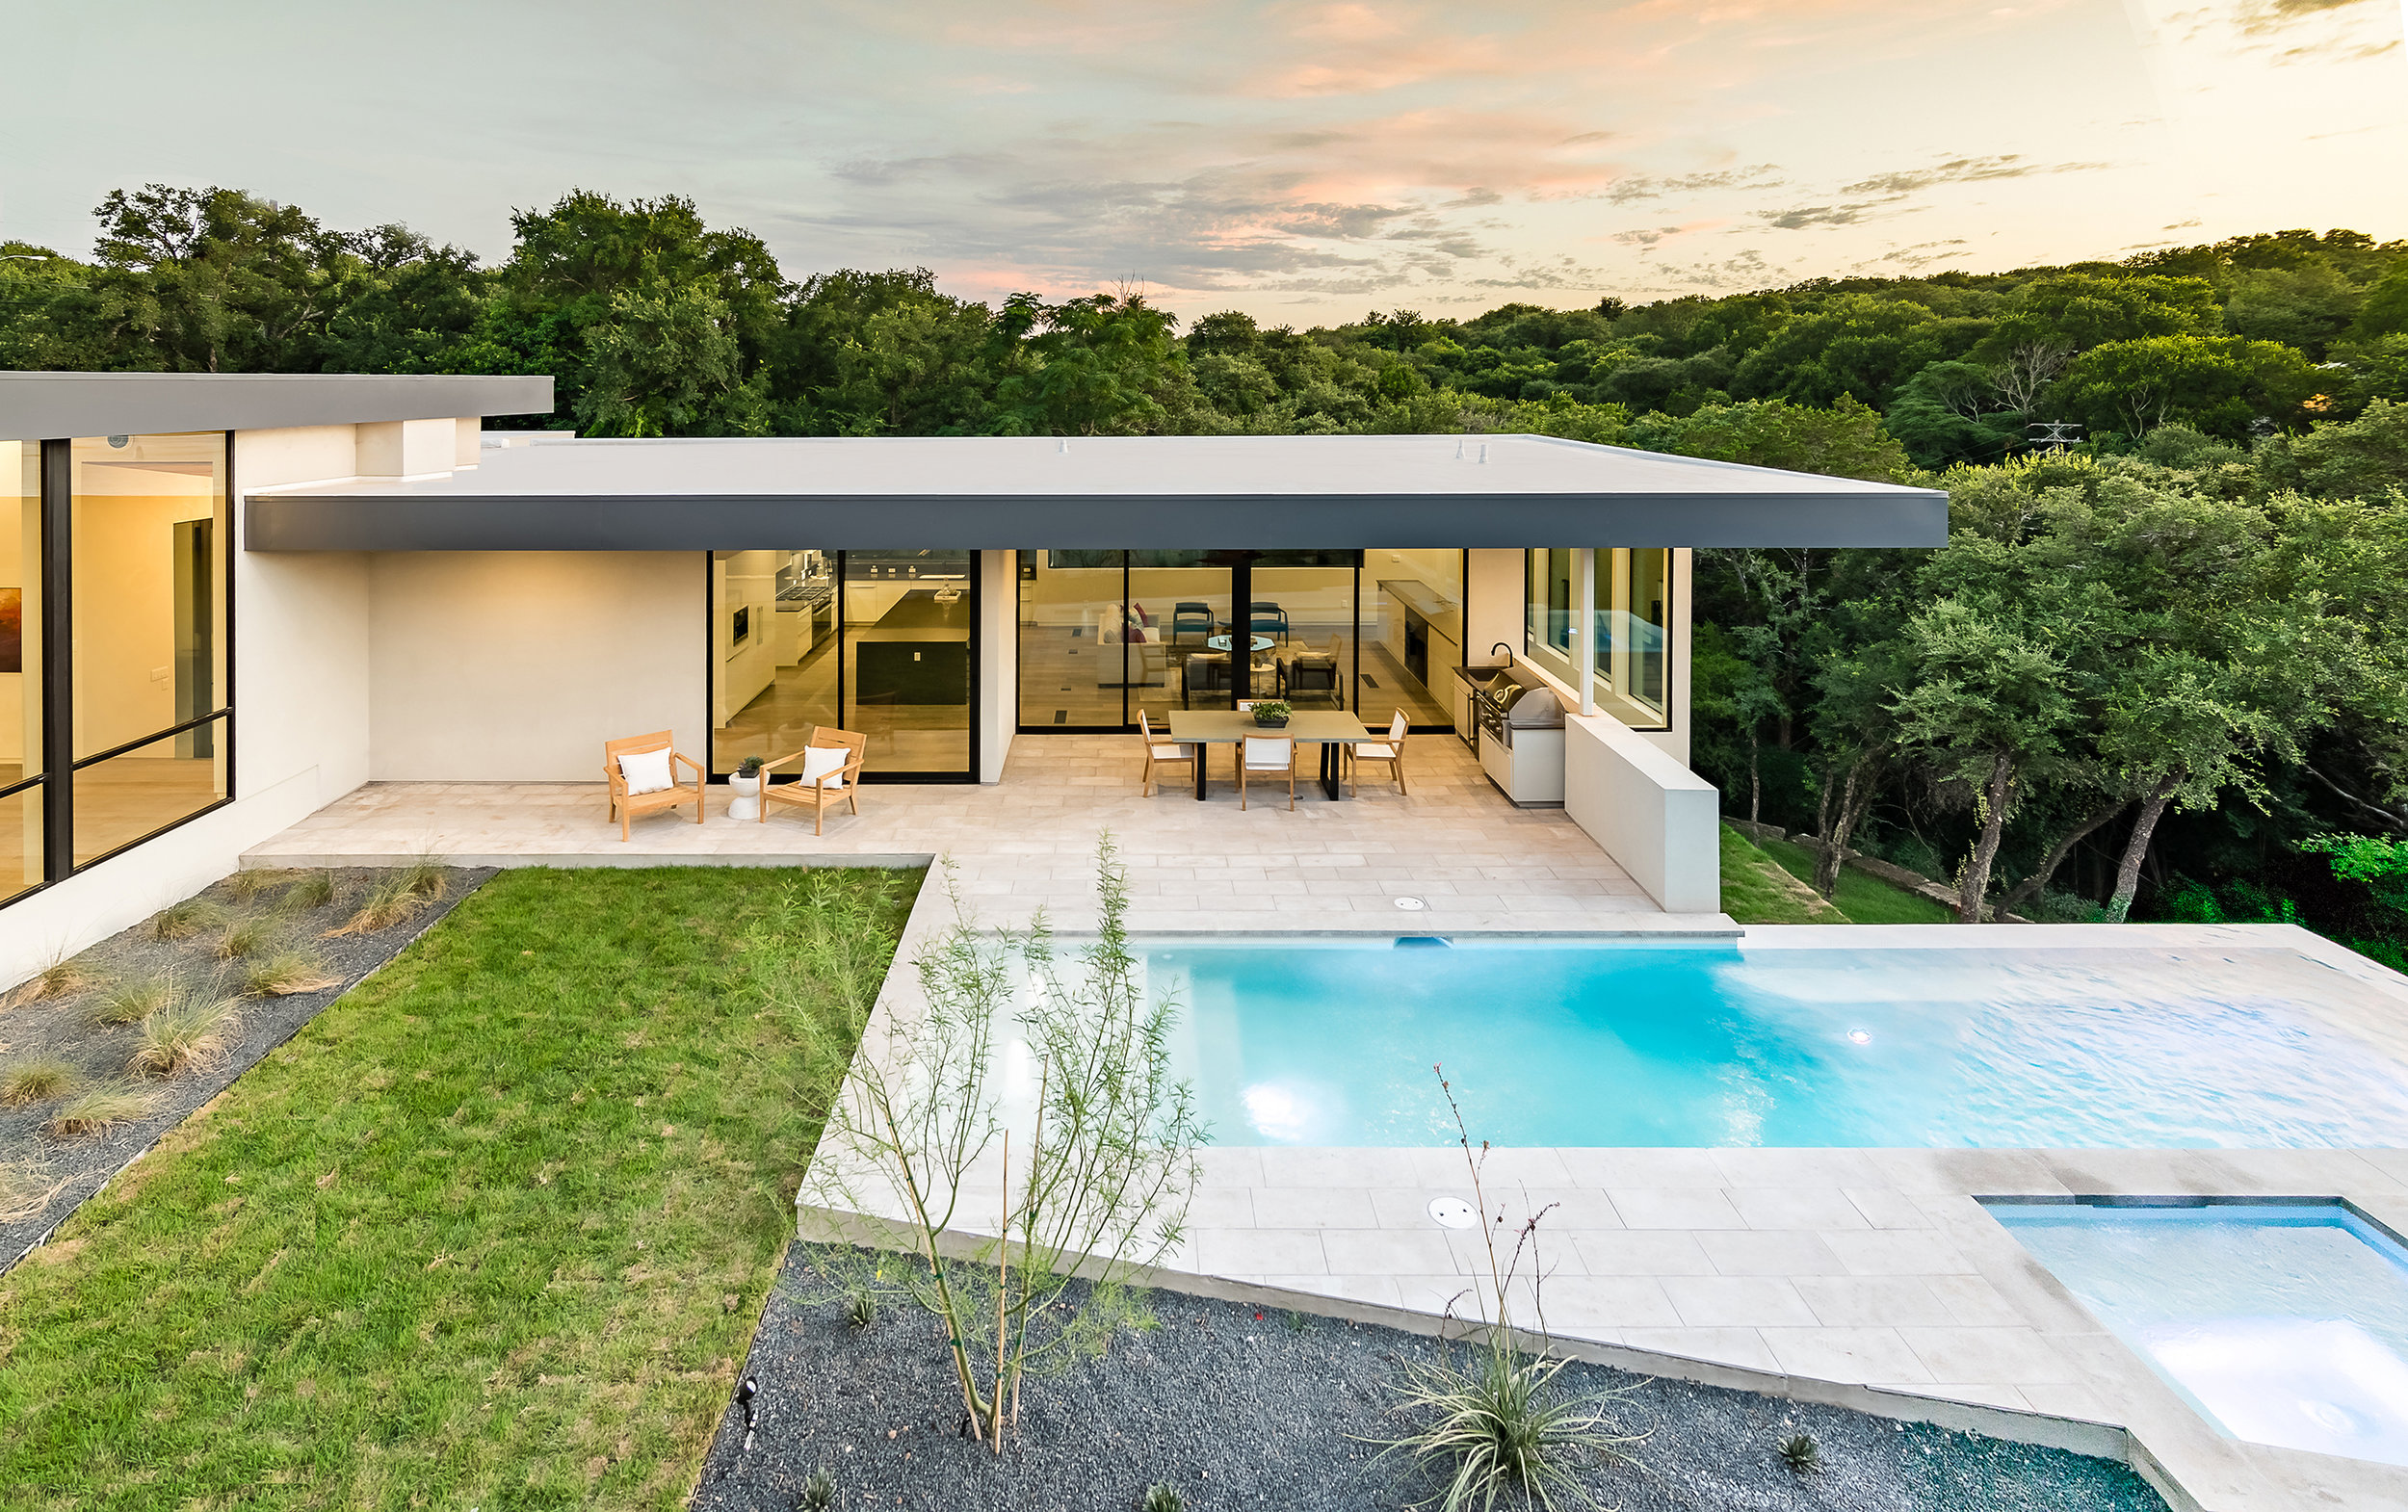 Matt Fajkus MF Architecture Bracketed Space House Photo 15 by Spaces and Faces Photography.jpg